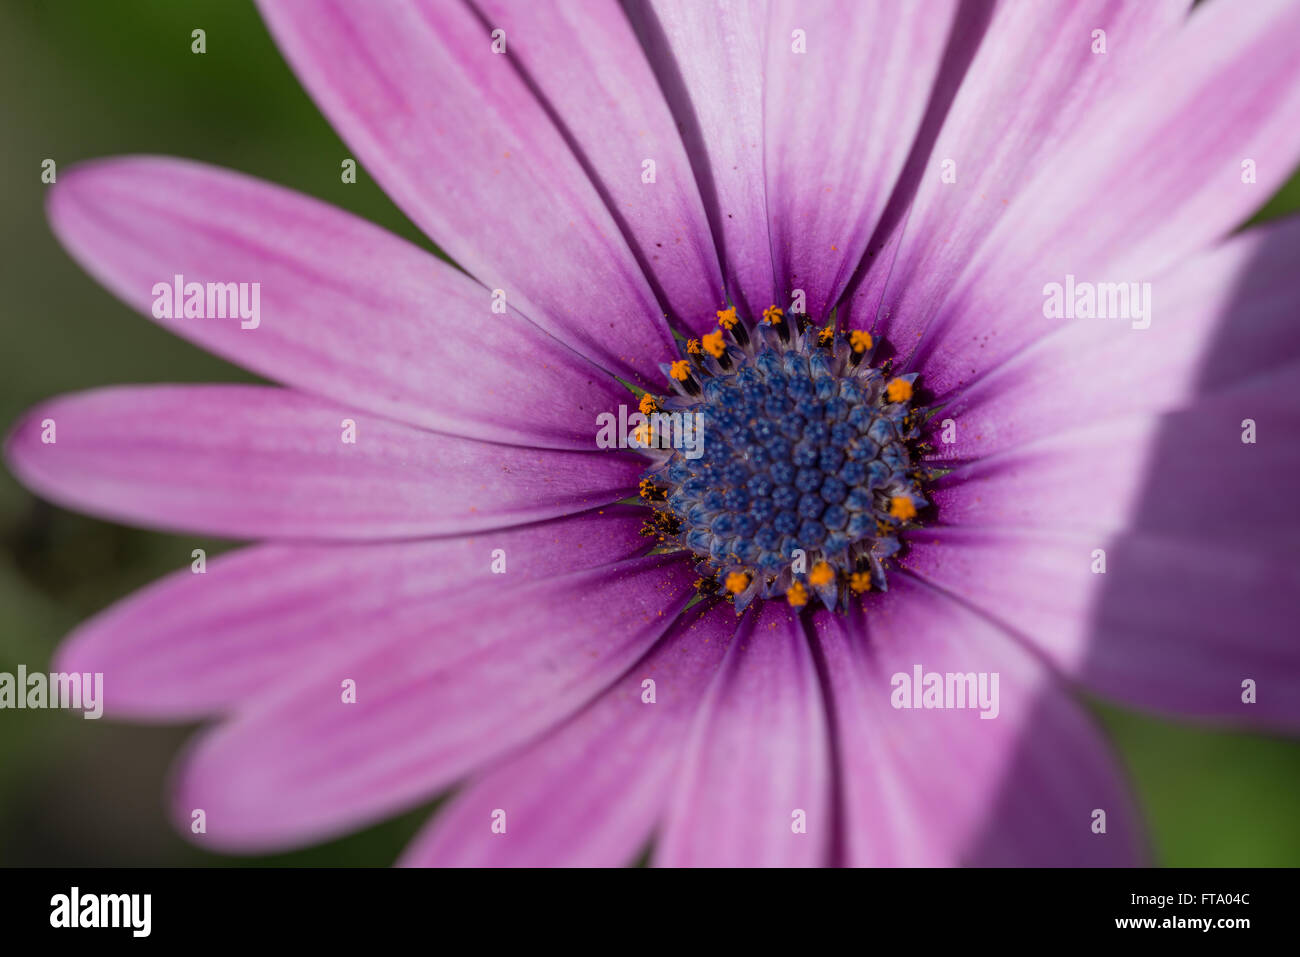 A close-up of  a purple flower - Stock Image